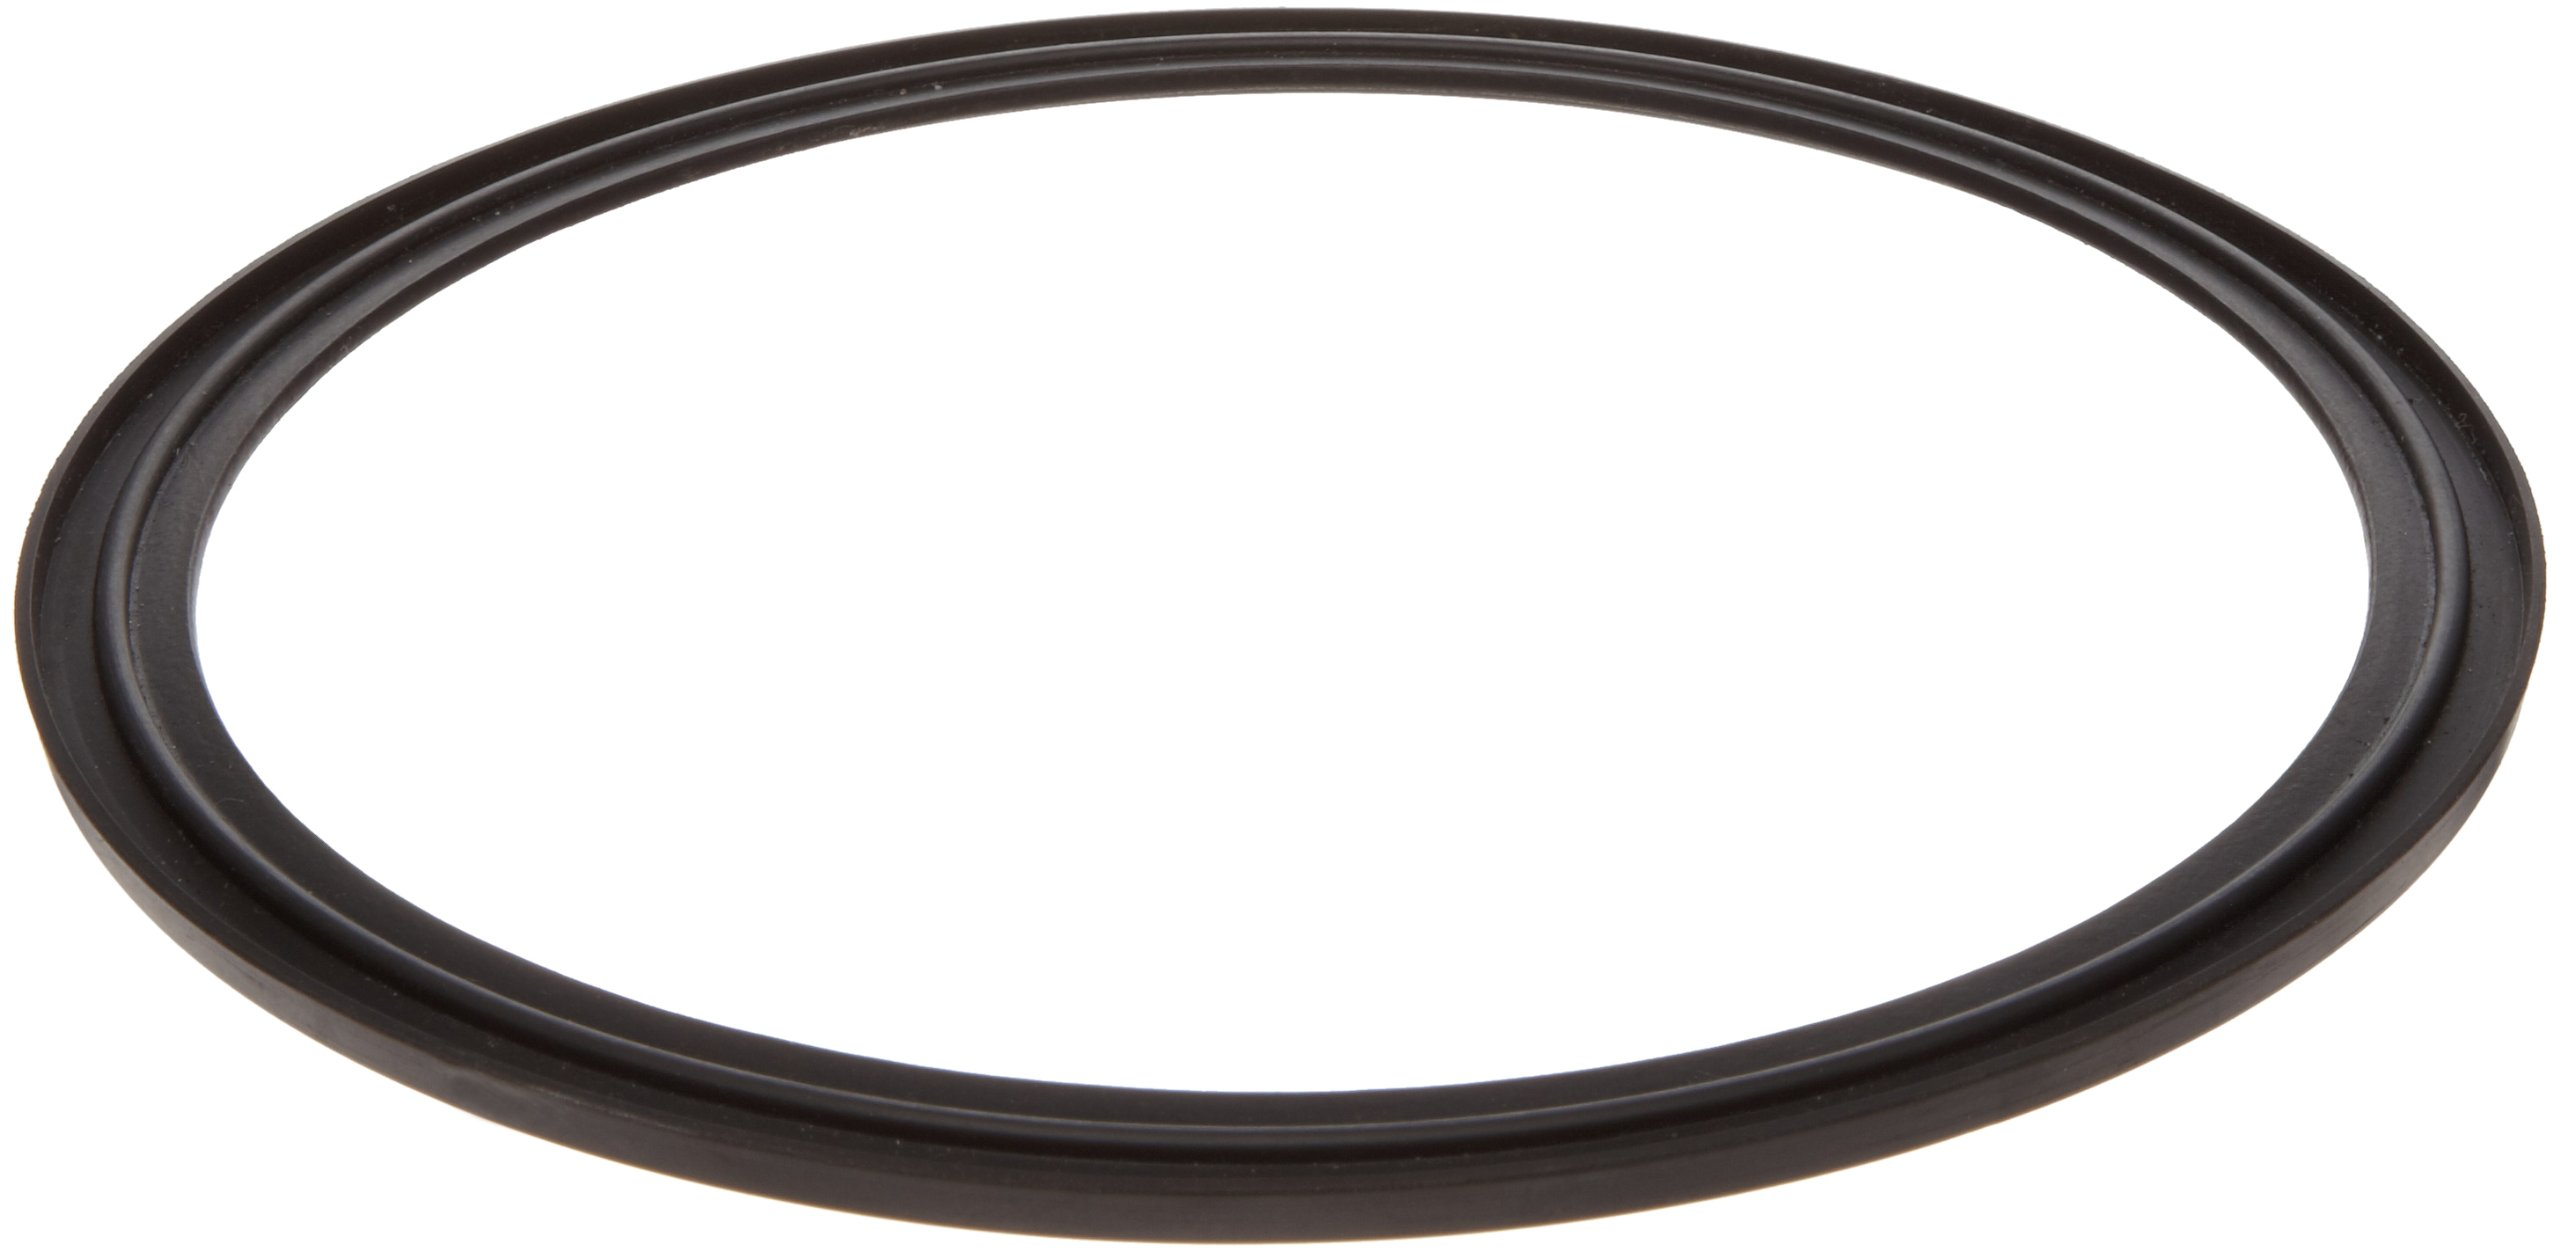 Buna-N Gasket for Quick-Clamp Fitting, Black, 0.203'' Thick, 3'' Tube OD, 2.900'' ID, 3.579'' OD (Pack of 1)